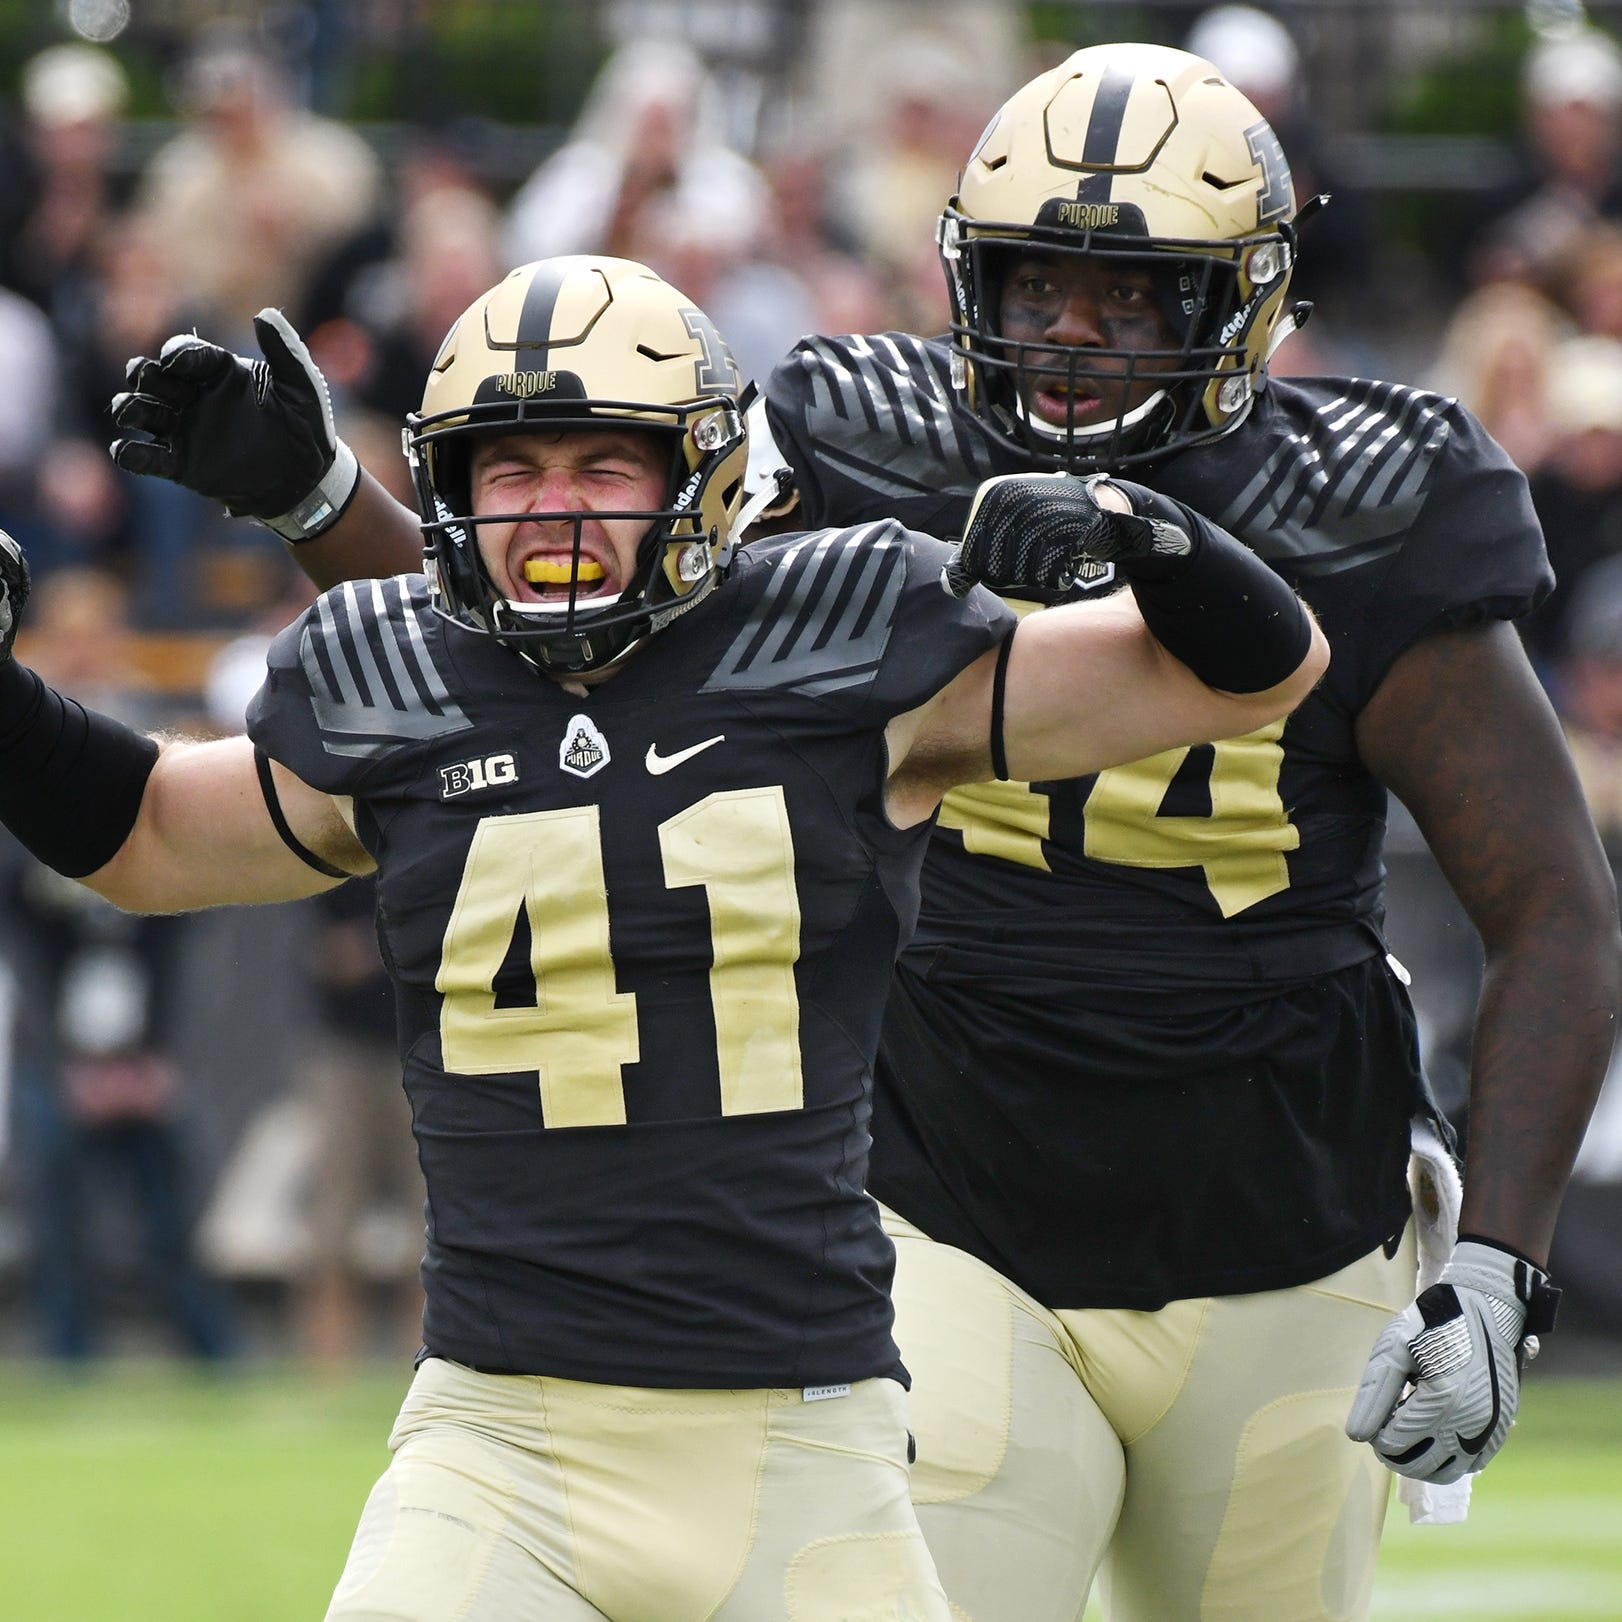 Jacob Thieneman reacts after sacking Boston College quarterback Anthony Brown in the first half Saturday, September 22, 2018, in Ross-Ade Stadium.